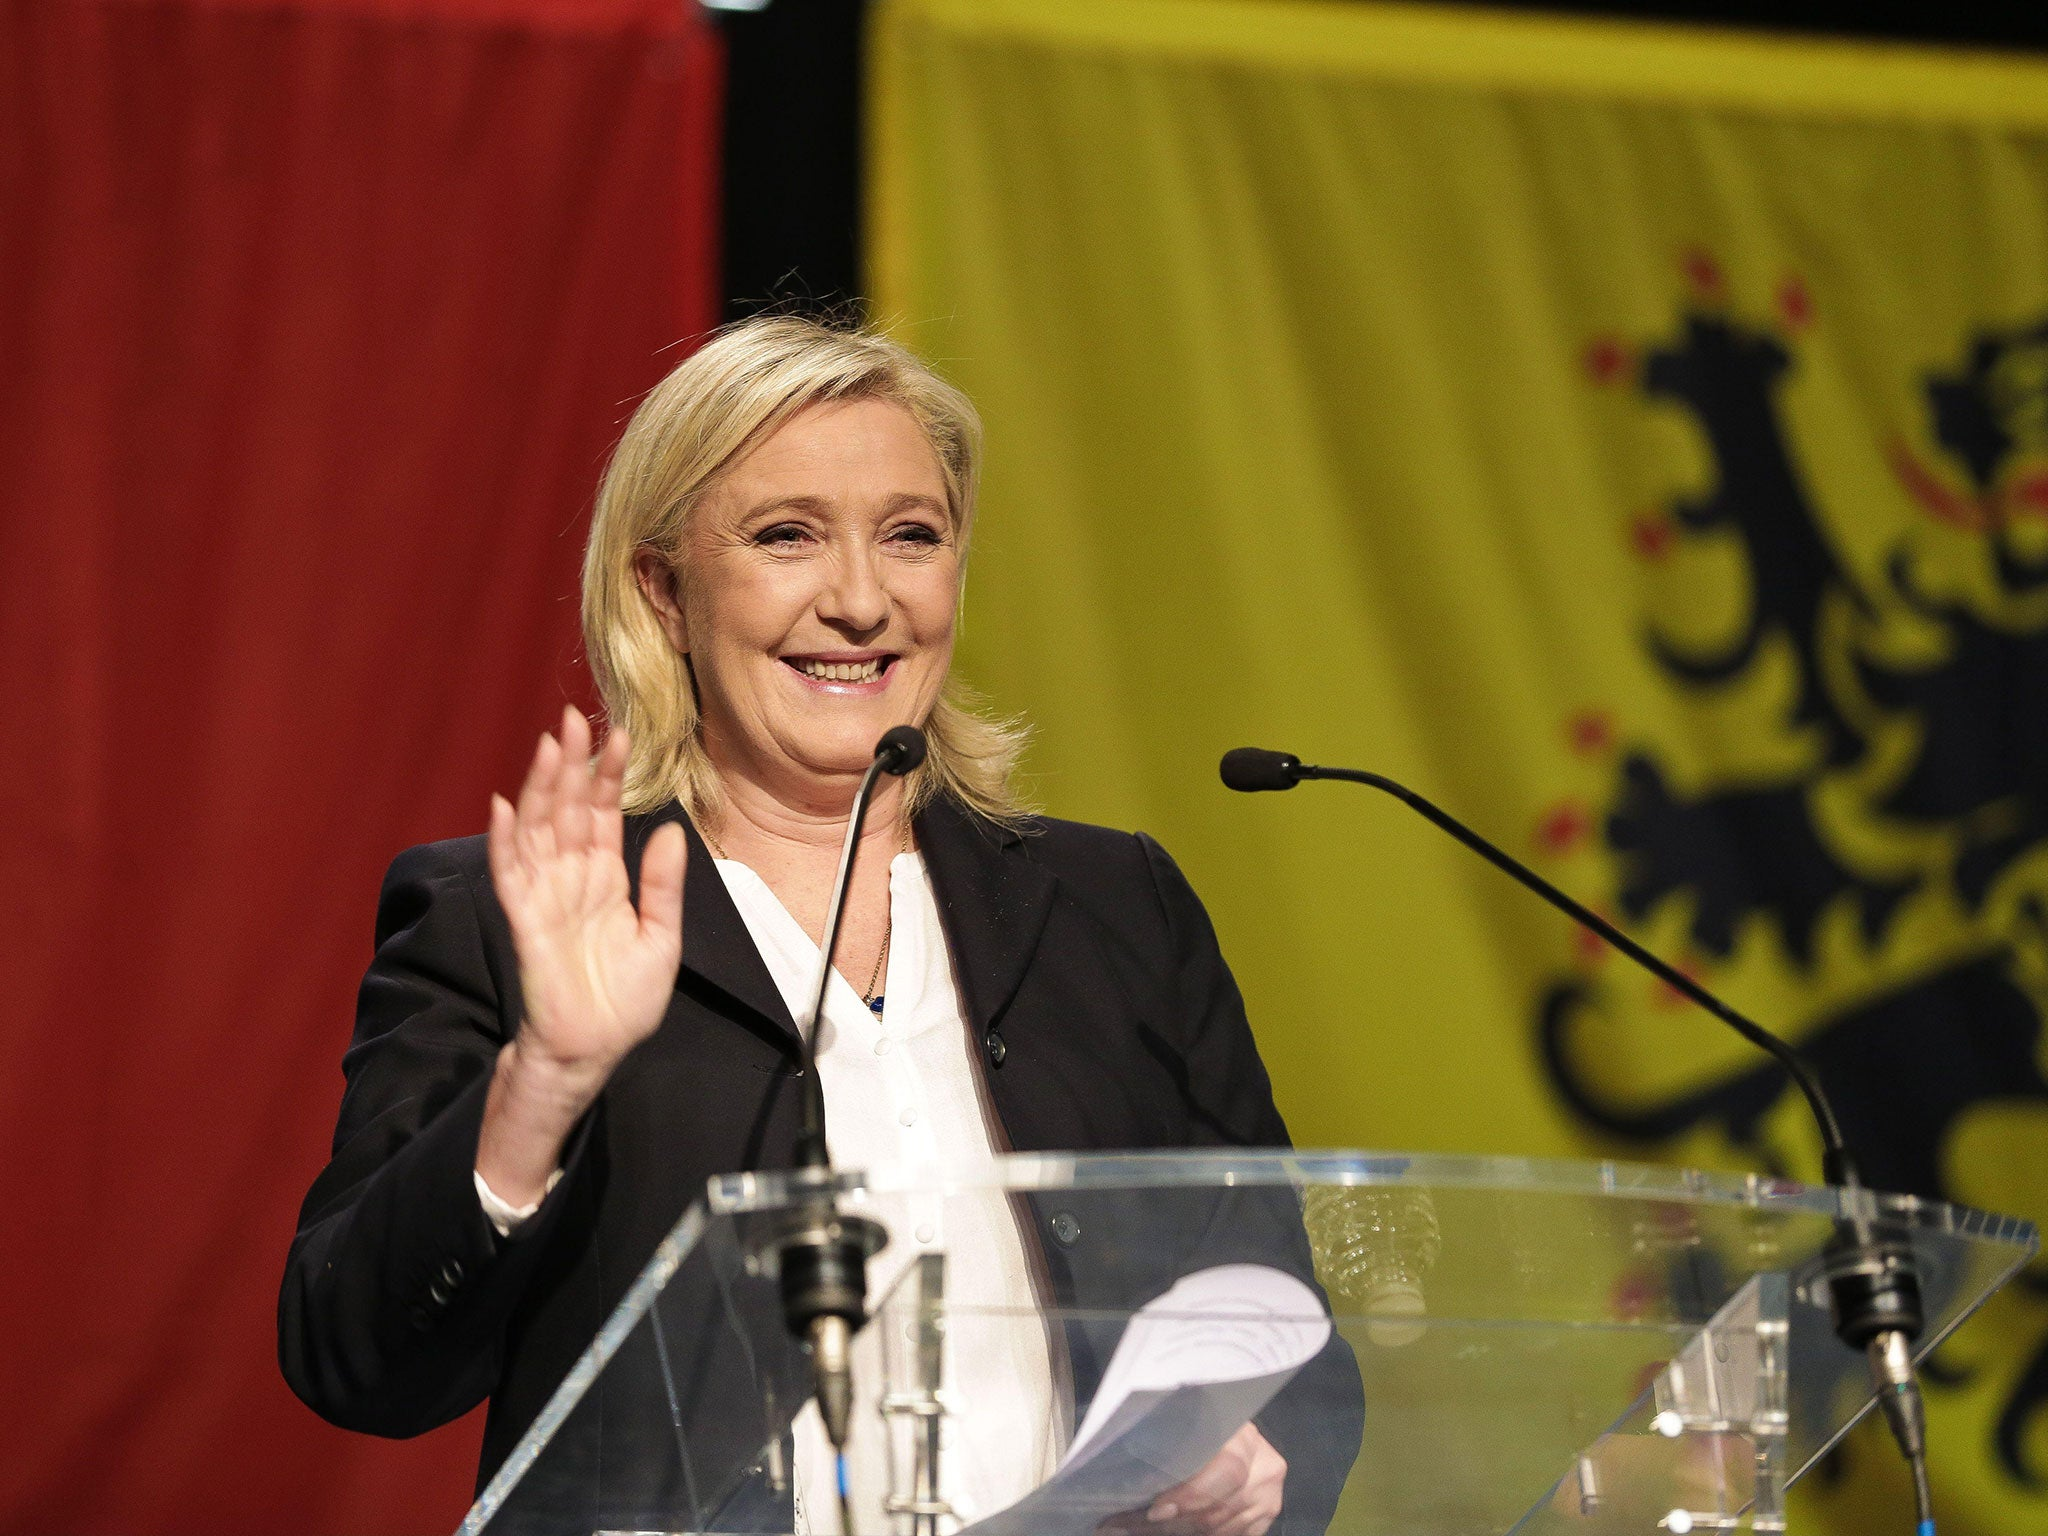 This is democracy – Marine Le Pen deserves the test of ...